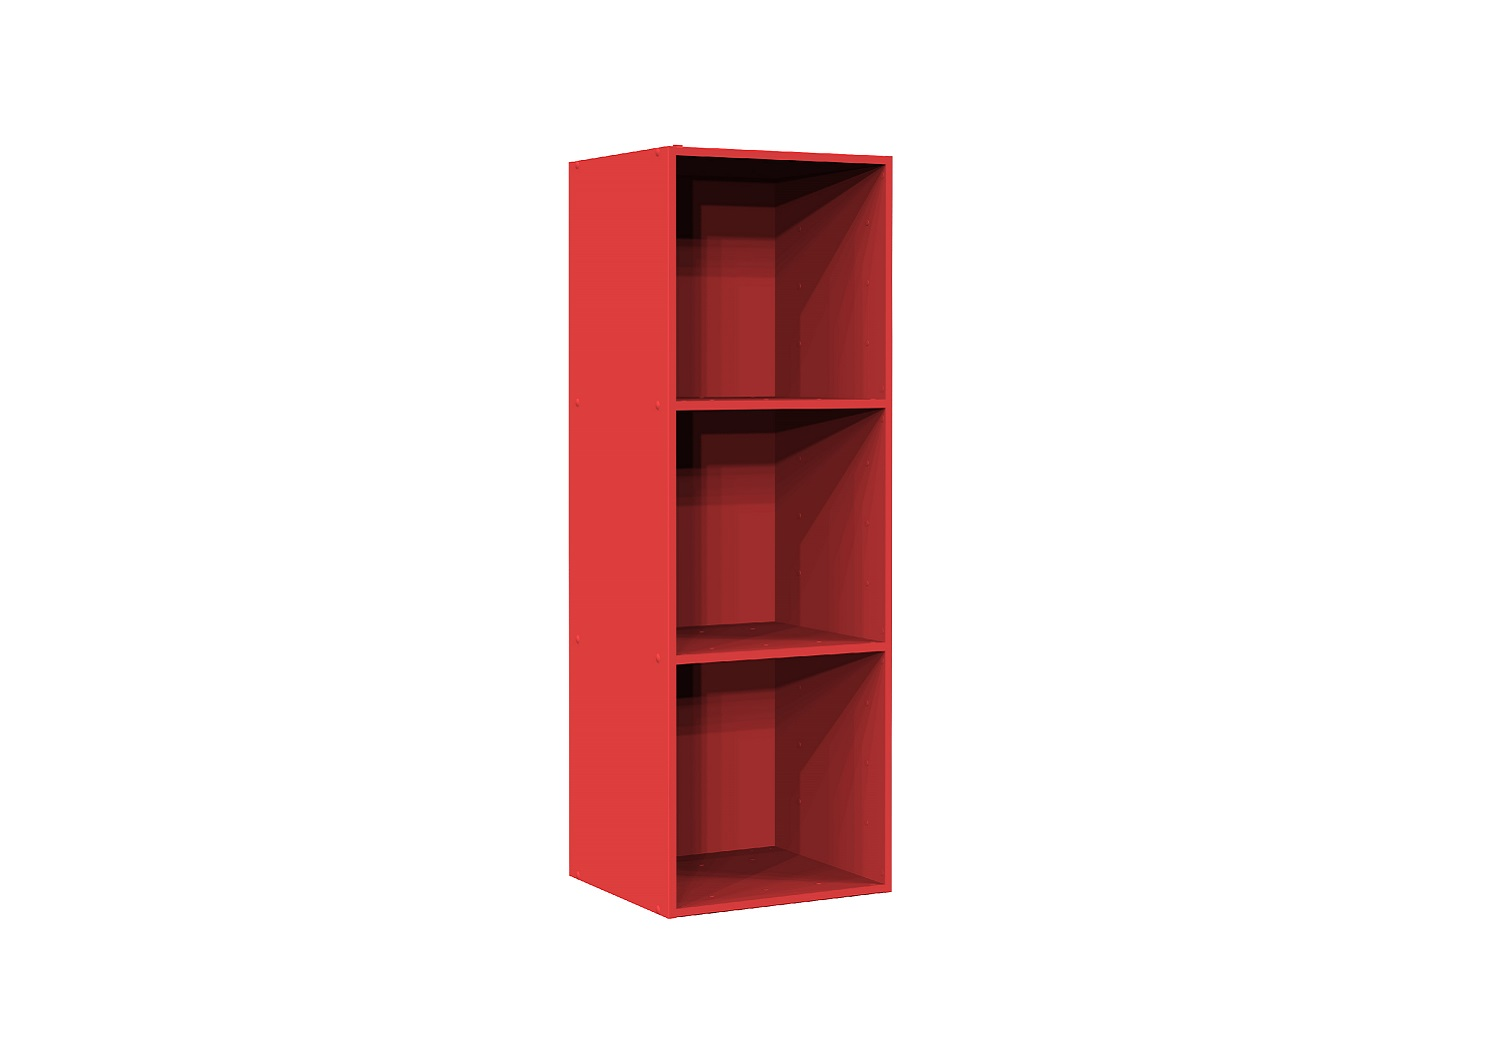 Bilrich Storage Furniture - Multi Kaz 3x1 Cube Red